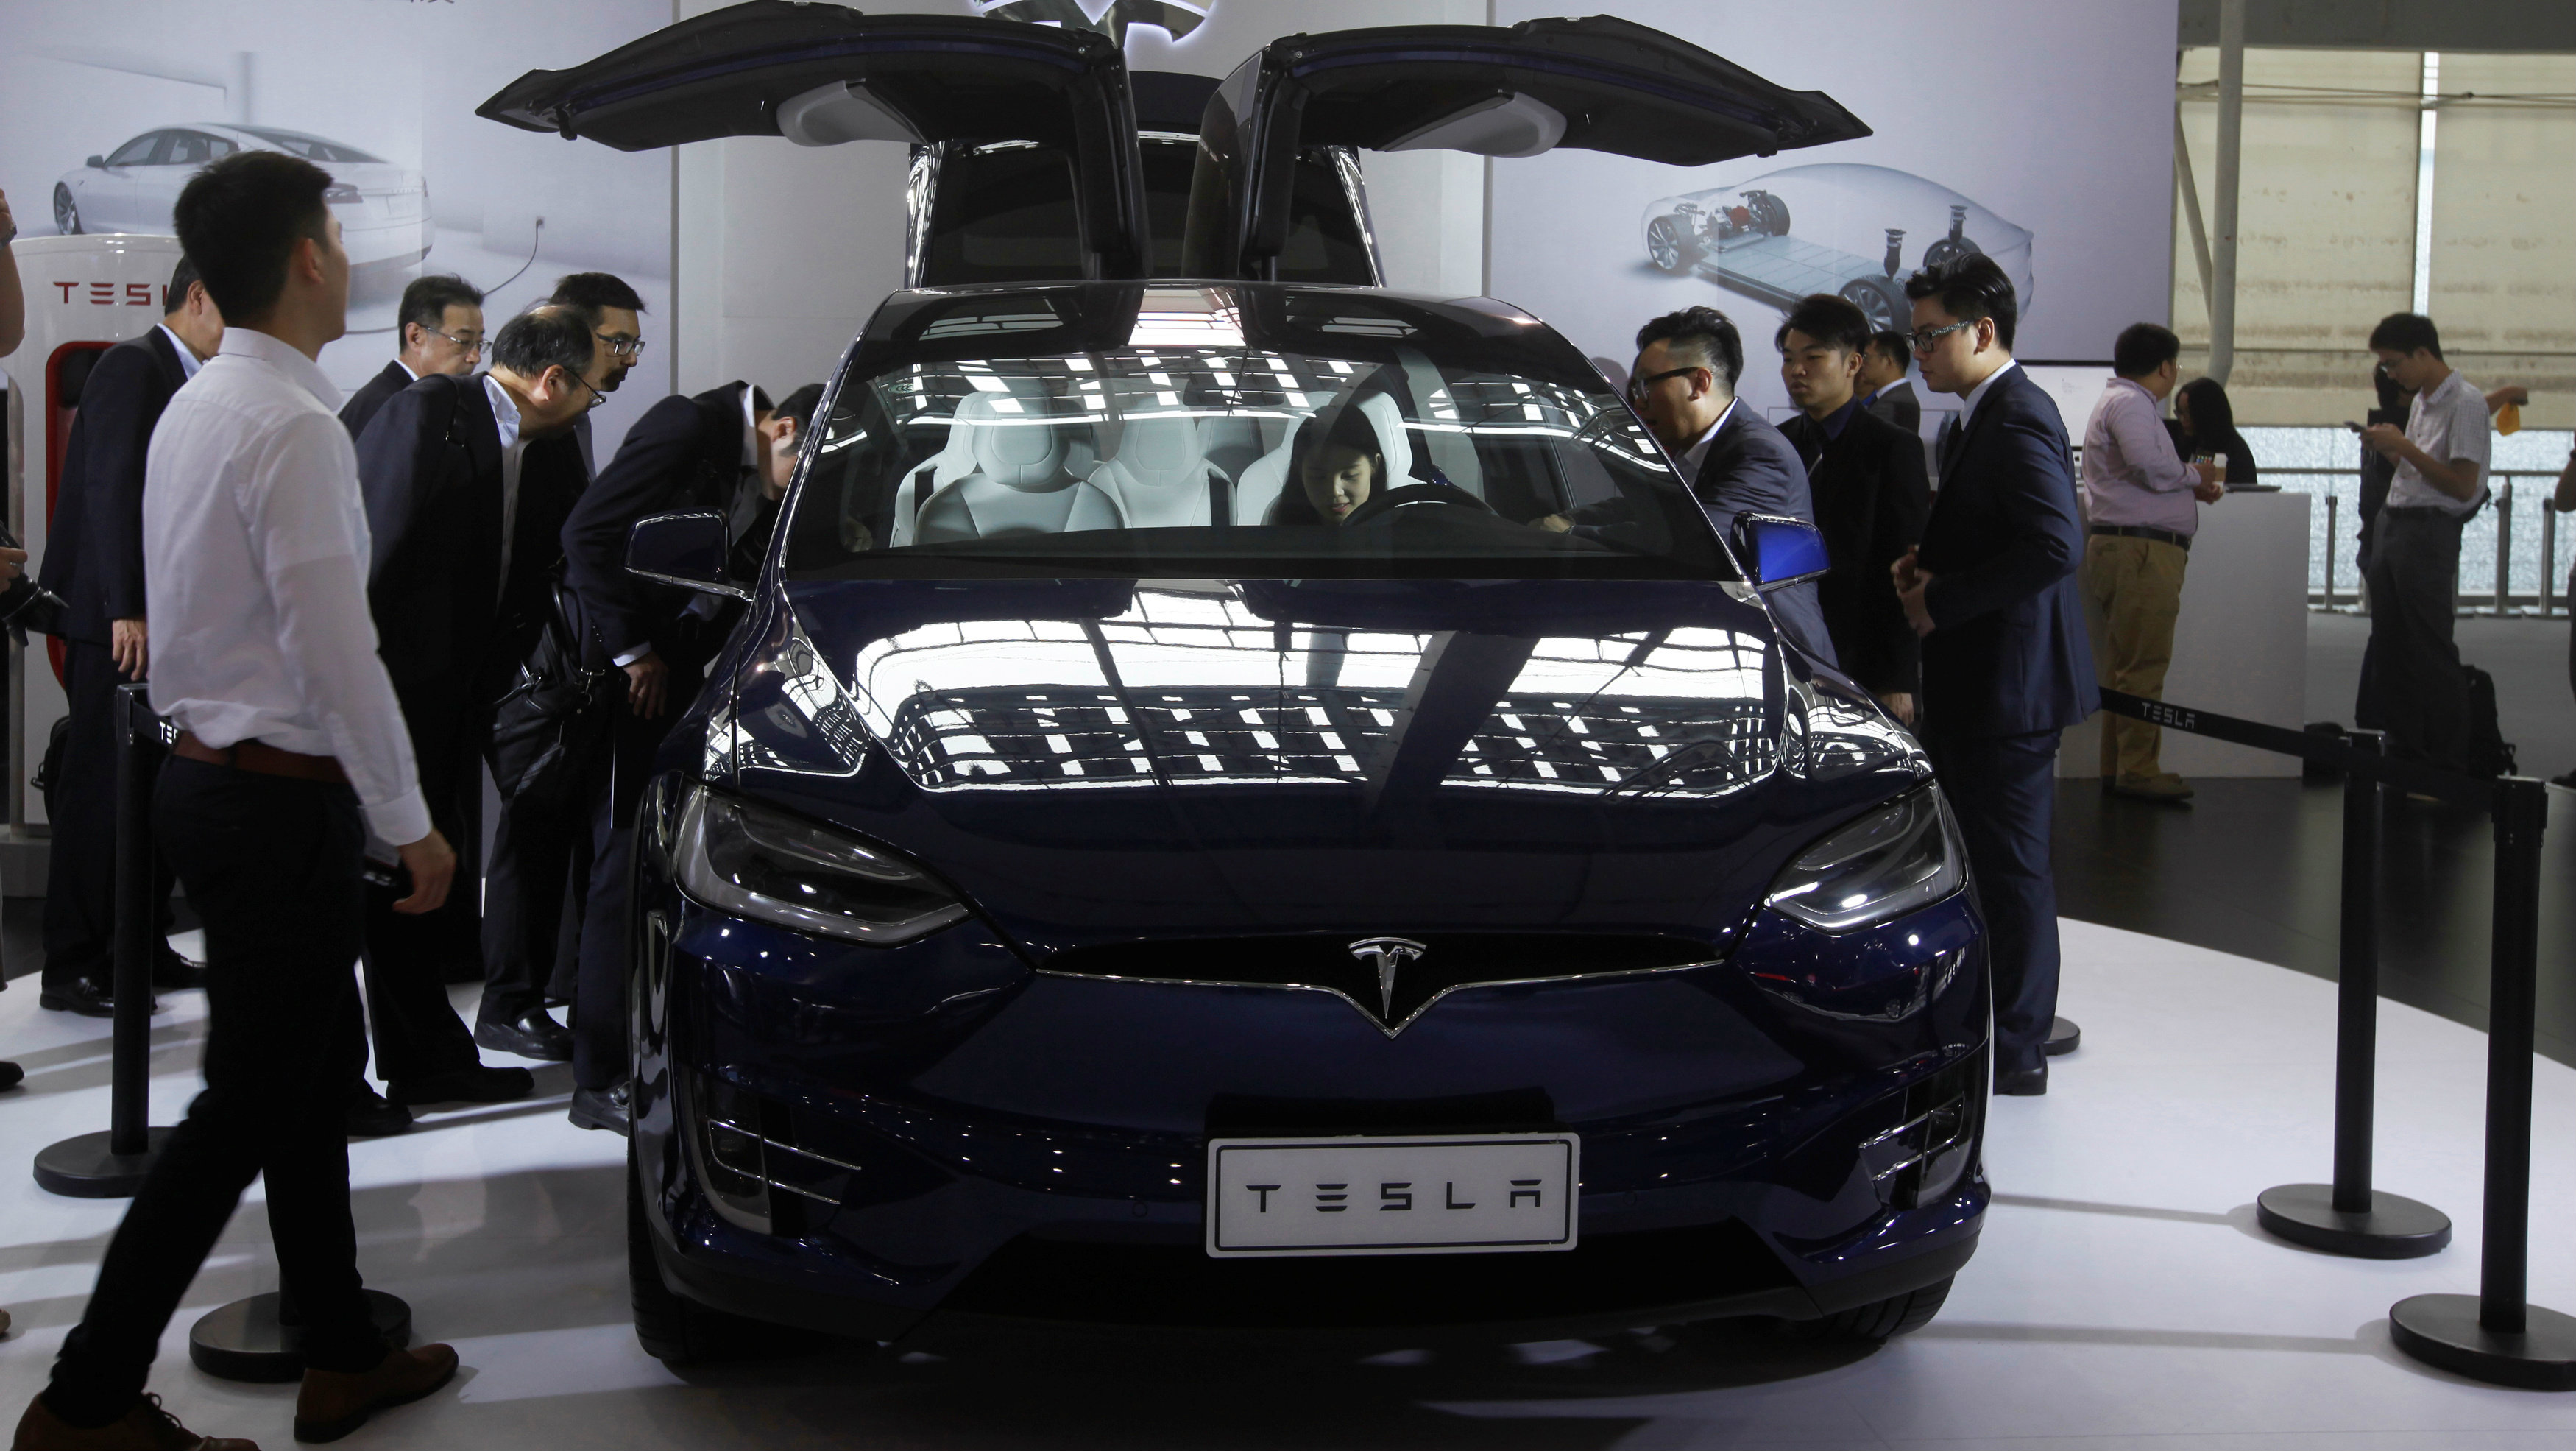 Tesla Is Shifting Gears In China By Manufacturing Its Own Cars There